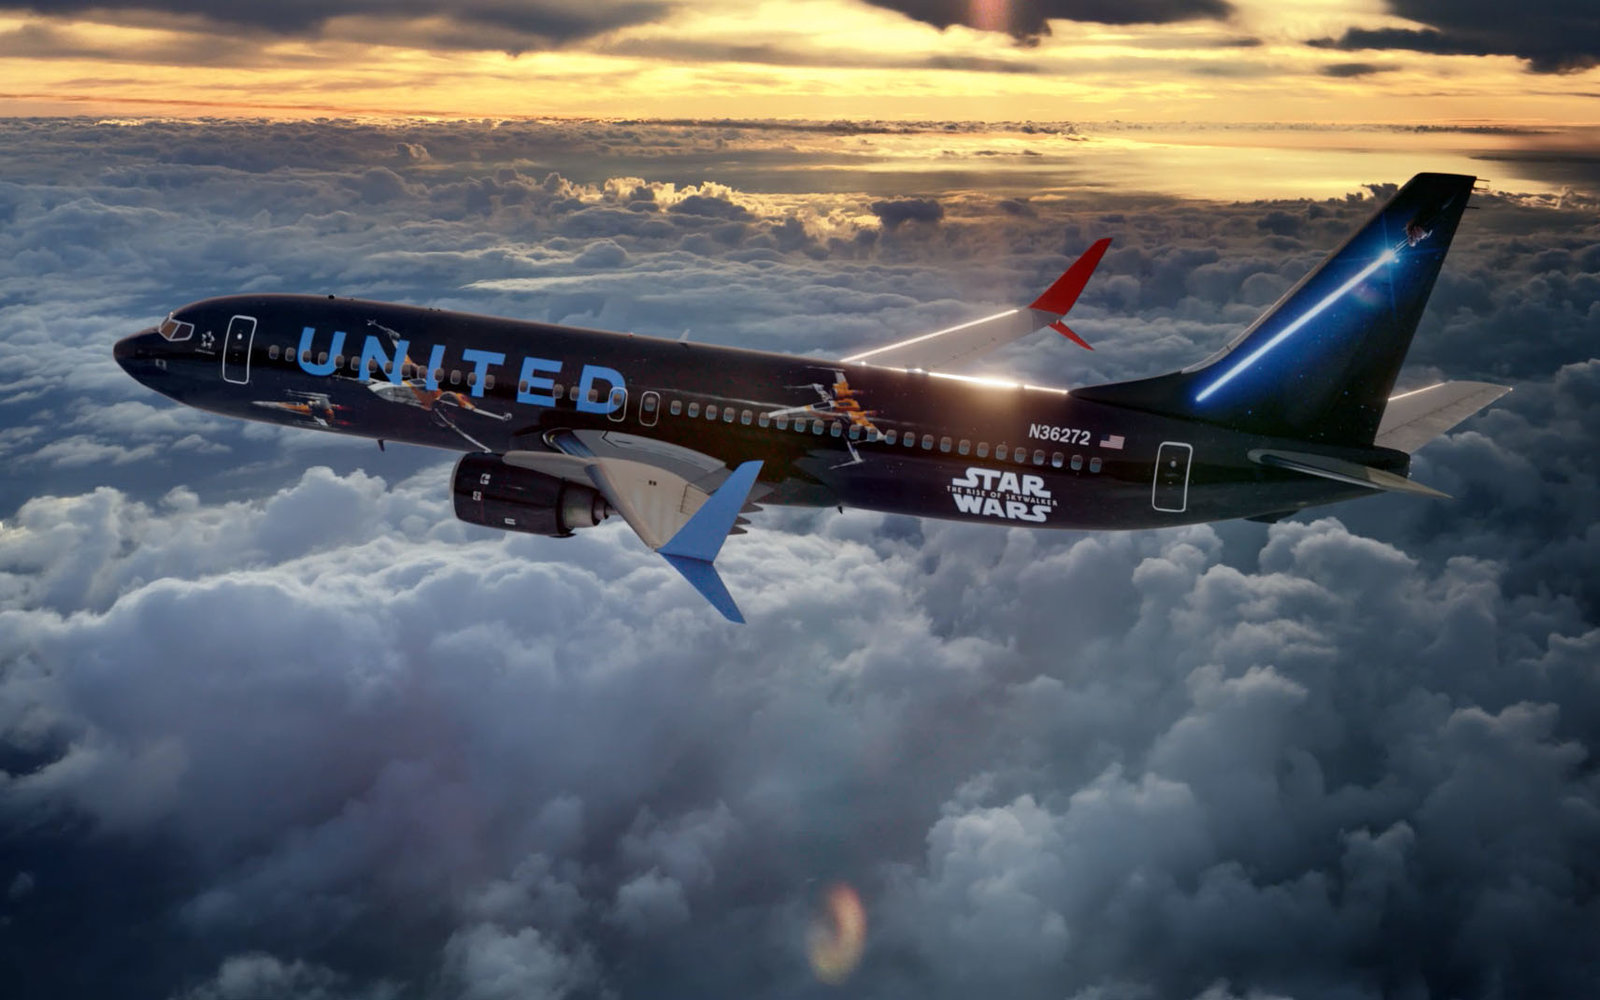 United Airlines' Star Wars-themed Plane